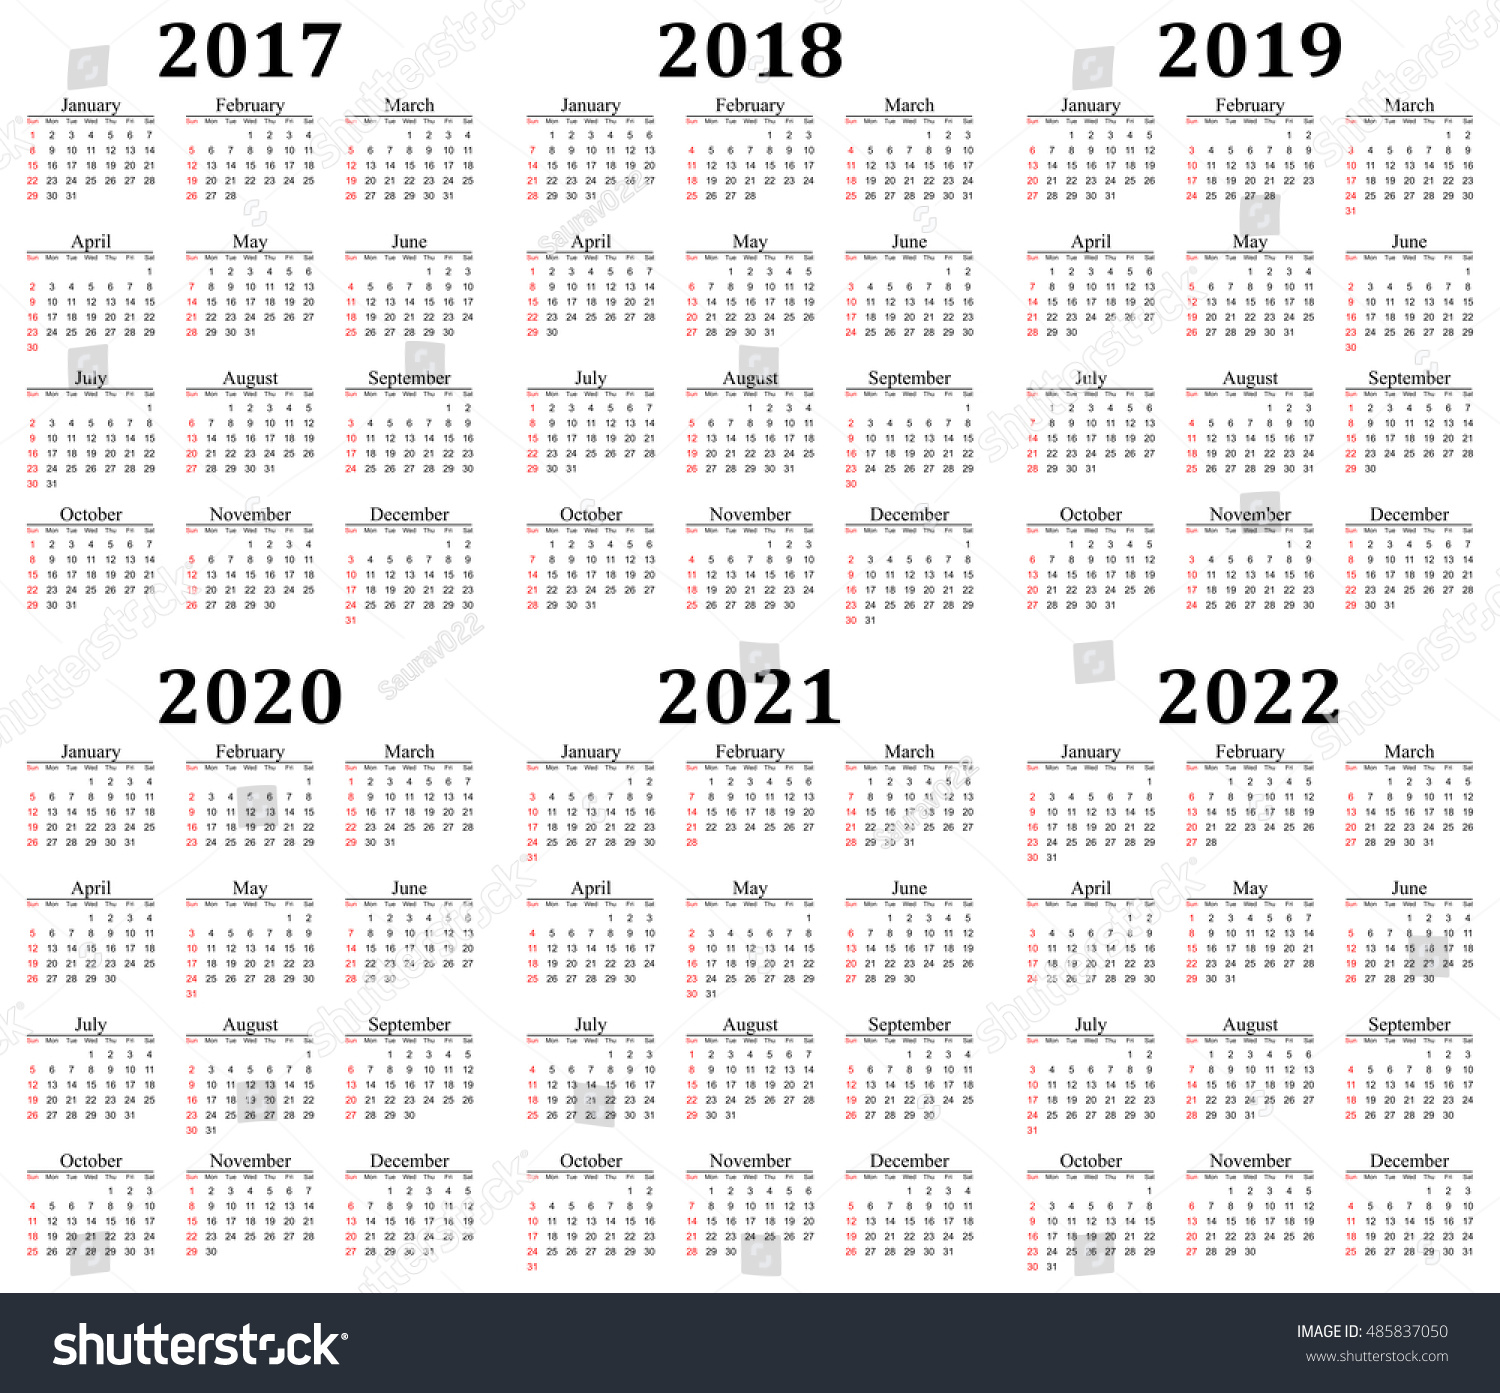 six year calendar 2017 2018 2019 2020 2021 and 2022 in